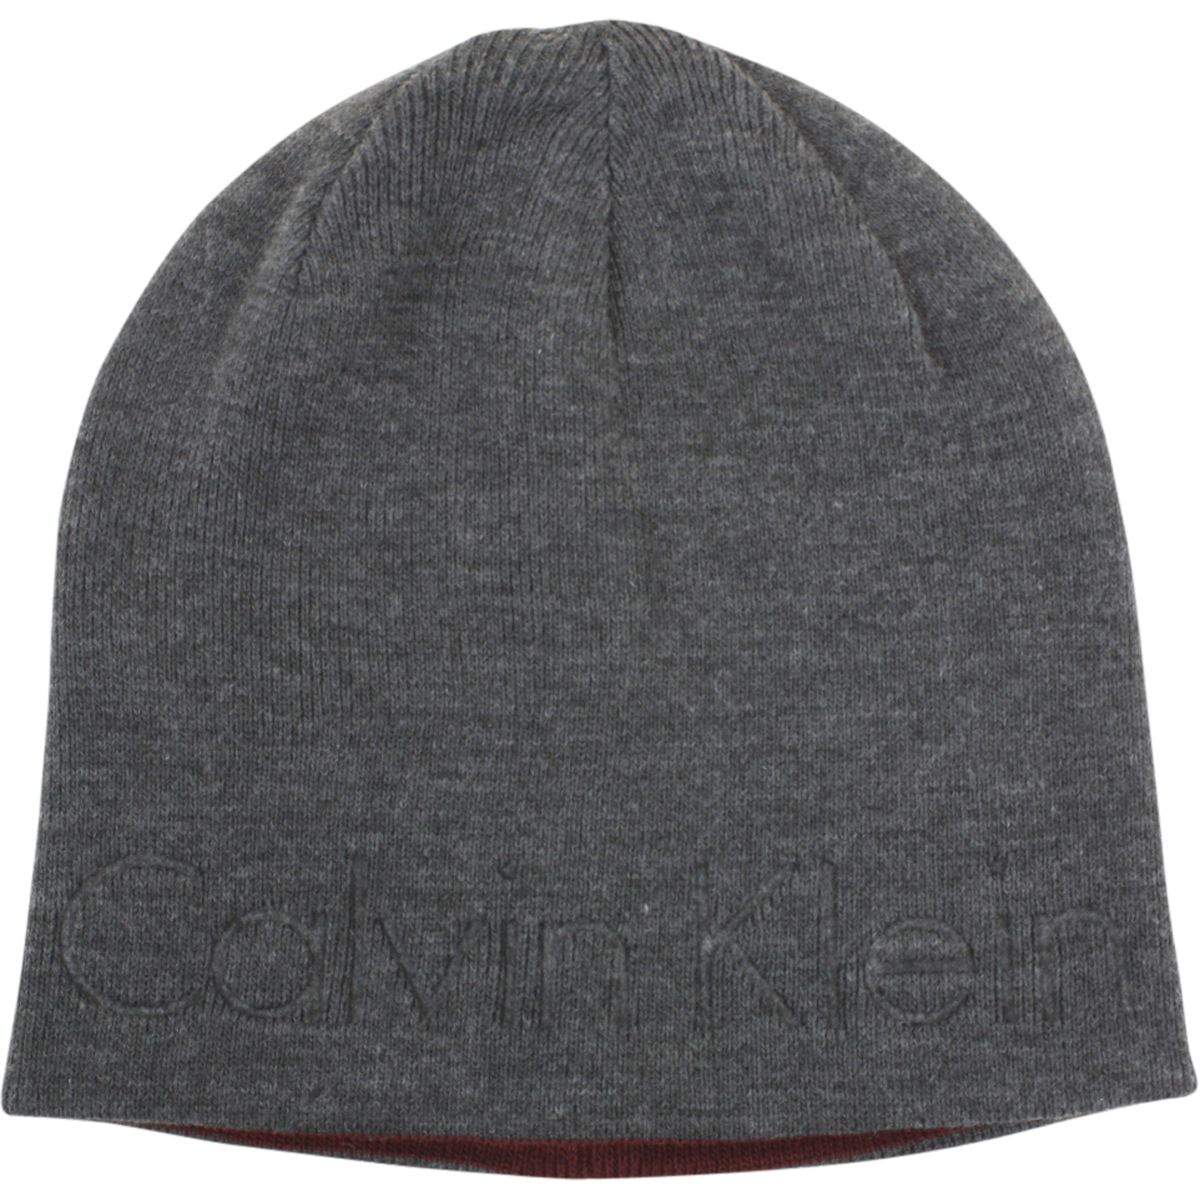 Image of Calvin Klein Men's Embossed Logo Beanie Cap Winter Hat (One Size Fits Most) - Grey - One Size Fits Most